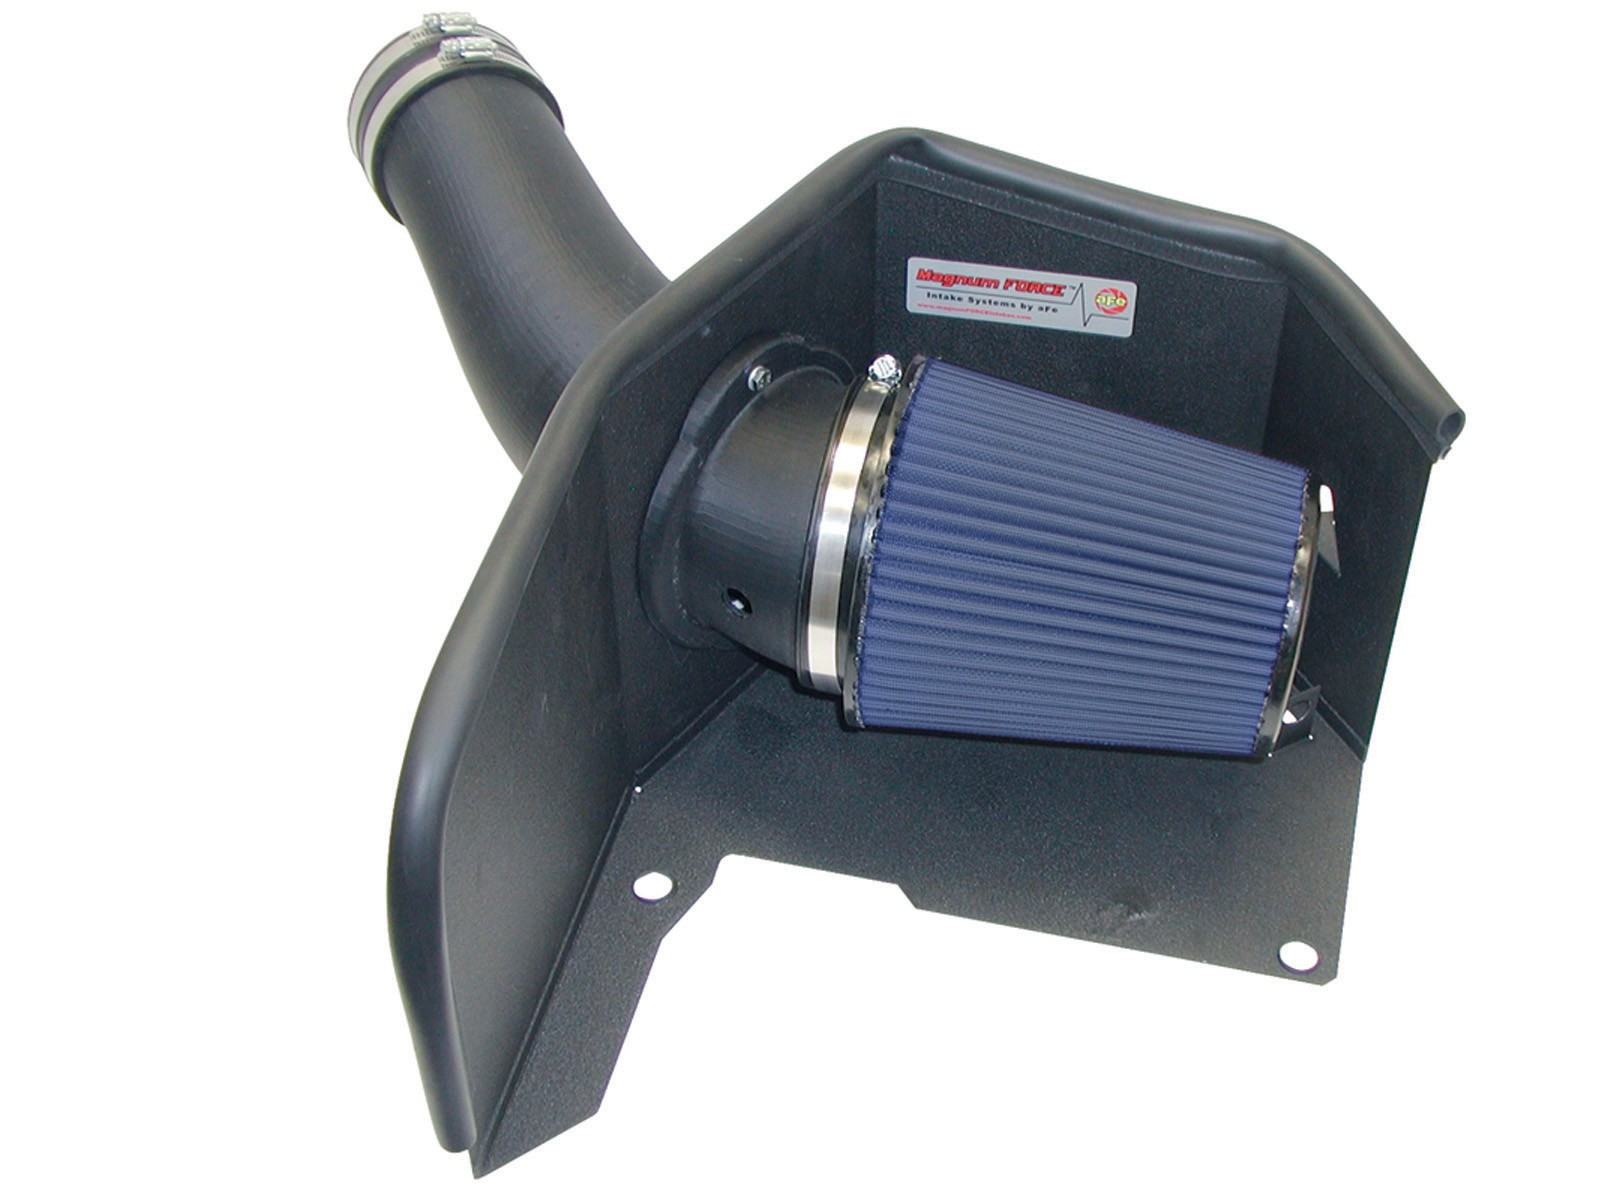 95 6.5 turbo diesel cold air intake